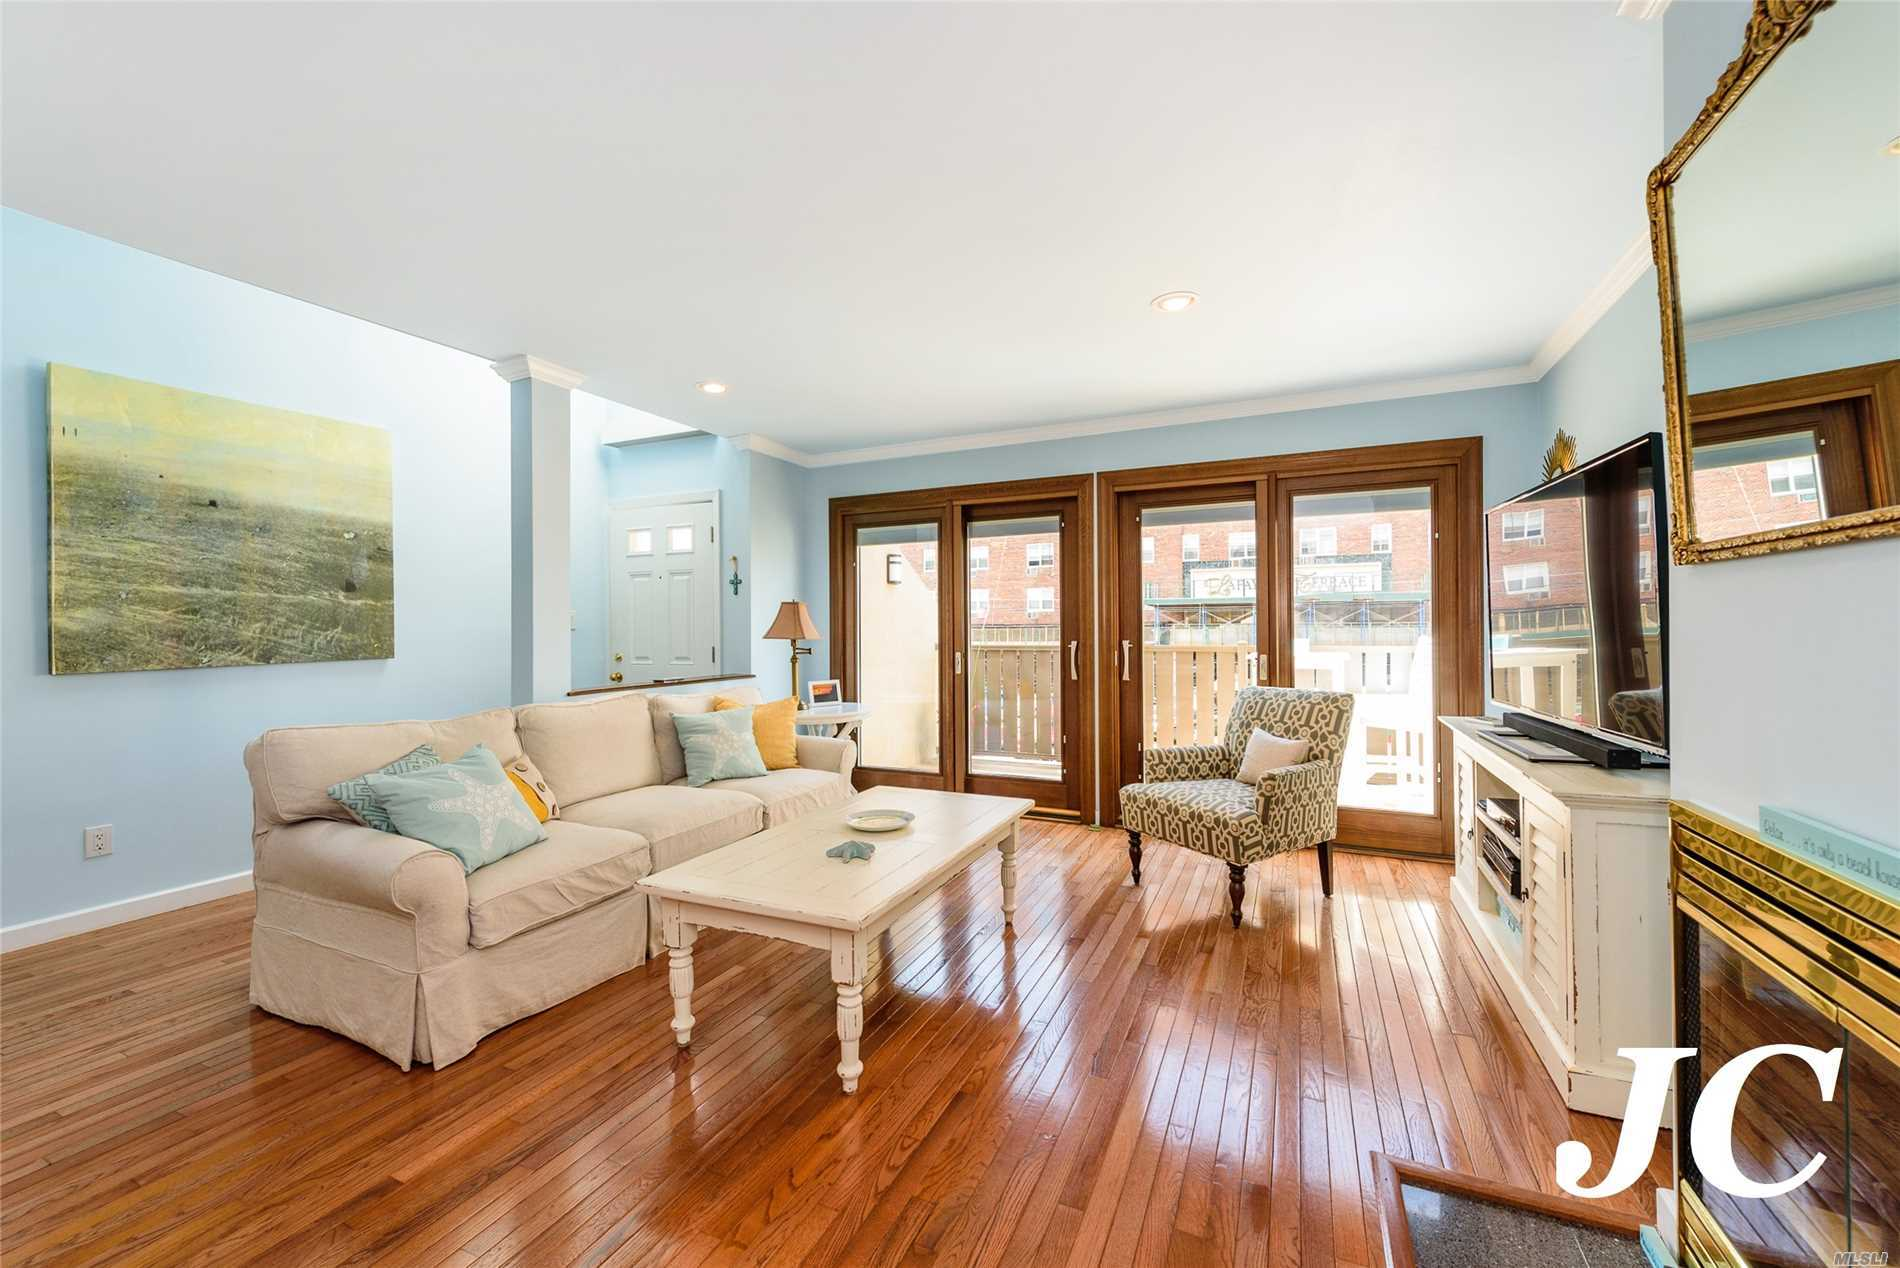 Property for sale at 379 W Broadway, Long Beach,  NY 11561